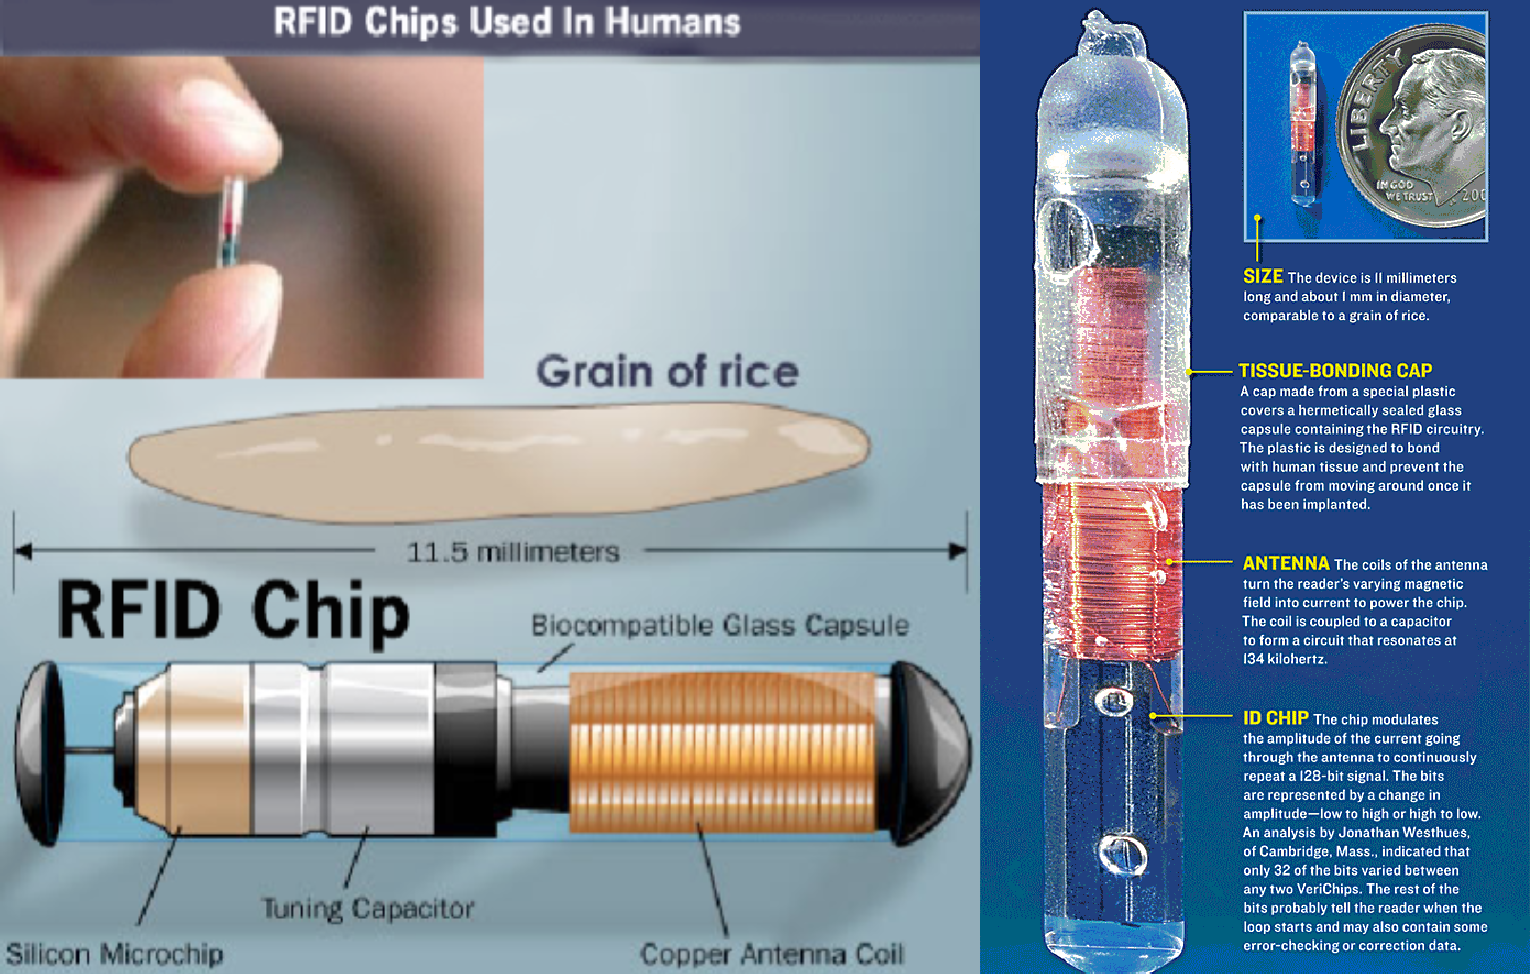 Microchip implant (human)